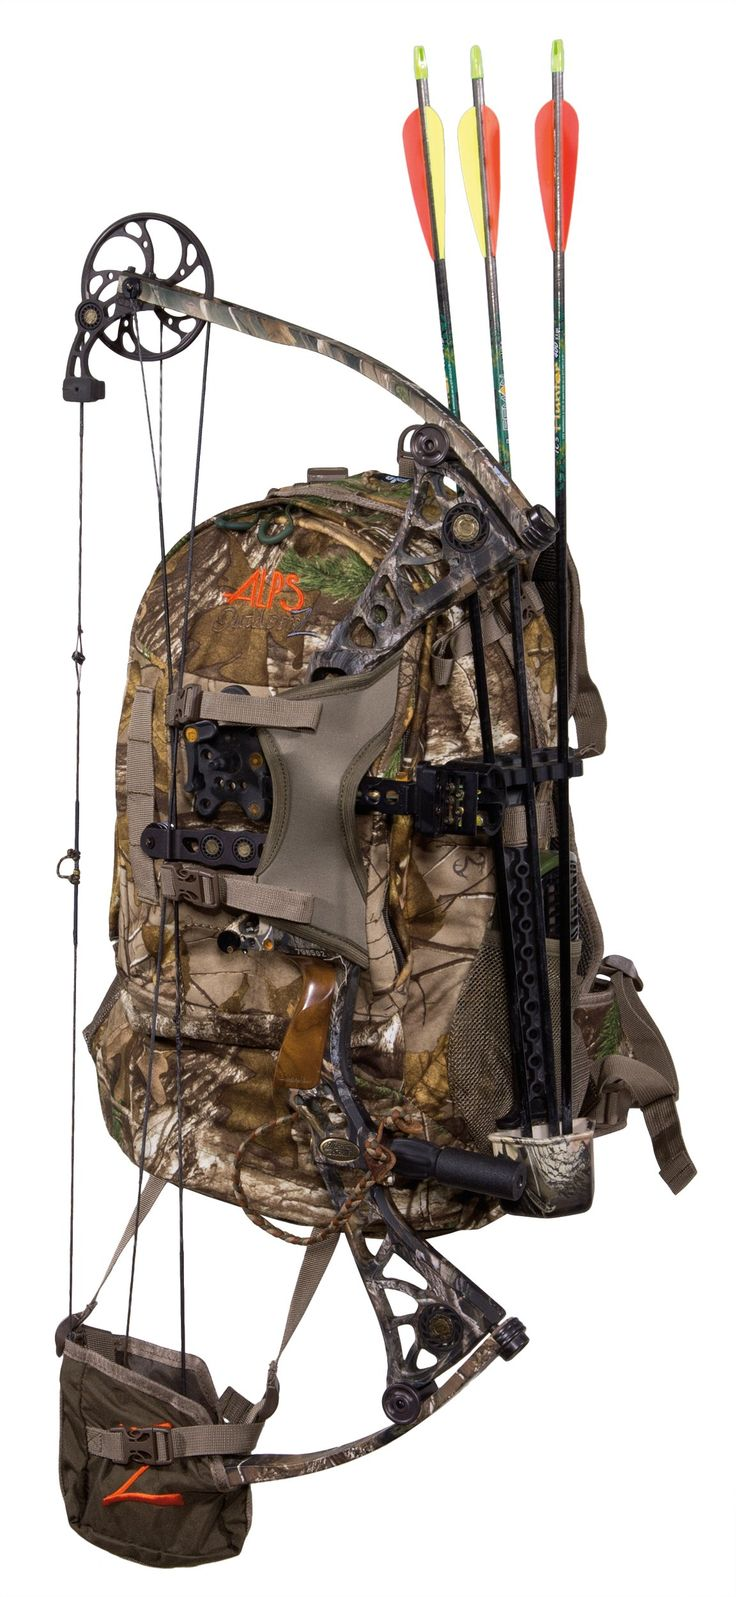 Amazon.com : ALPS OutdoorZ Pursuit Bow Hunting Back Pack - Brushed Realtree Xtra HD, 2700 Cubic Inches : Outdoor Backpacks : Sports & Outdoors